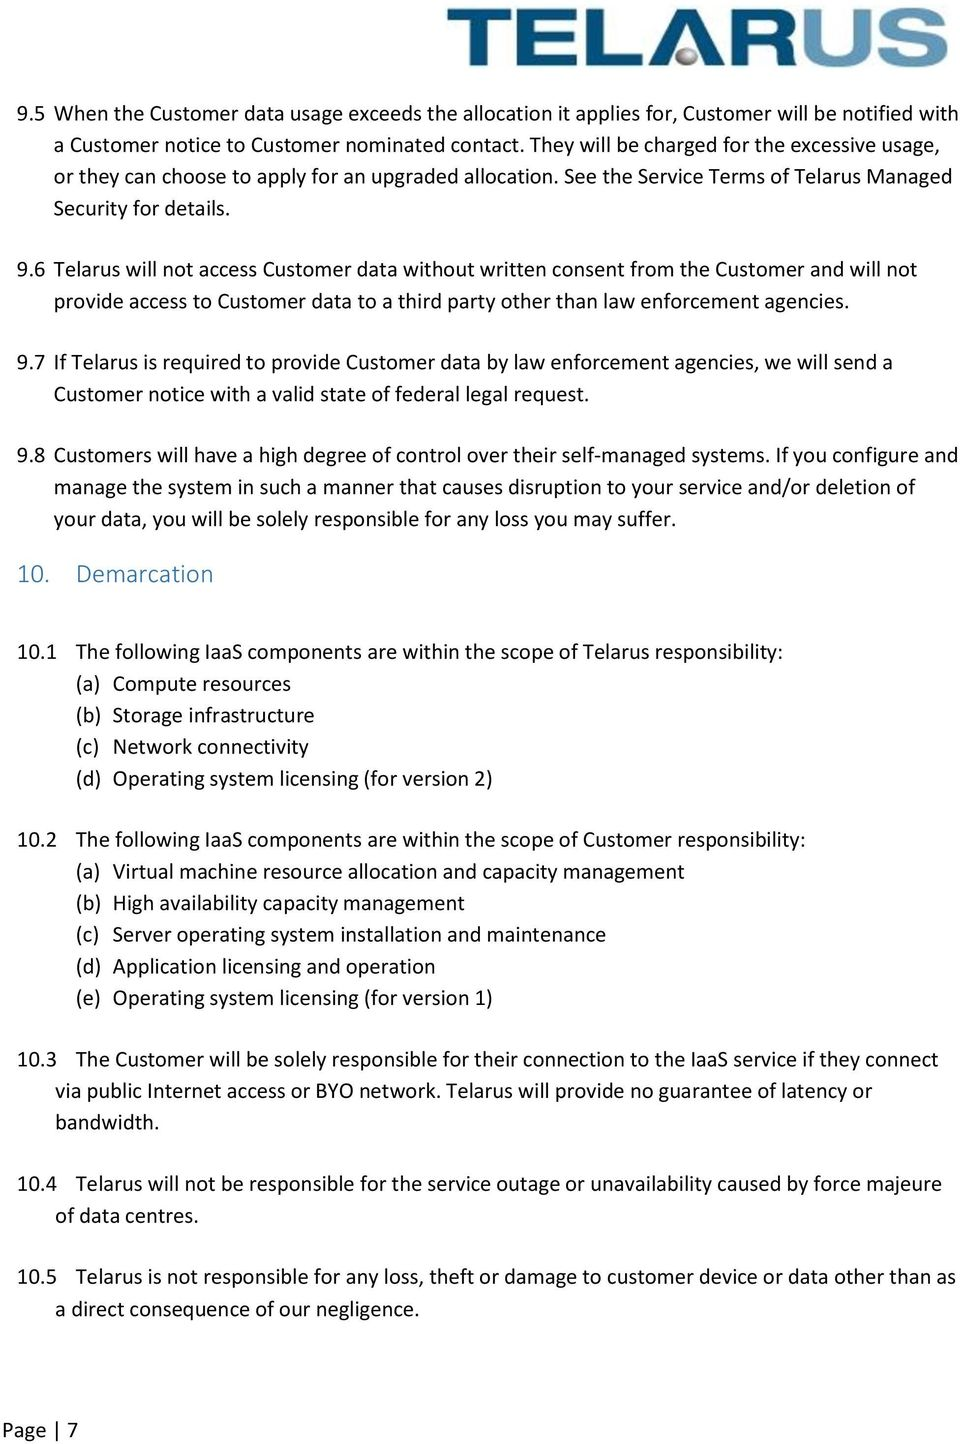 6 Telarus will not access Customer data without written consent from the Customer and will not provide access to Customer data to a third party other than law enforcement agencies. 9.